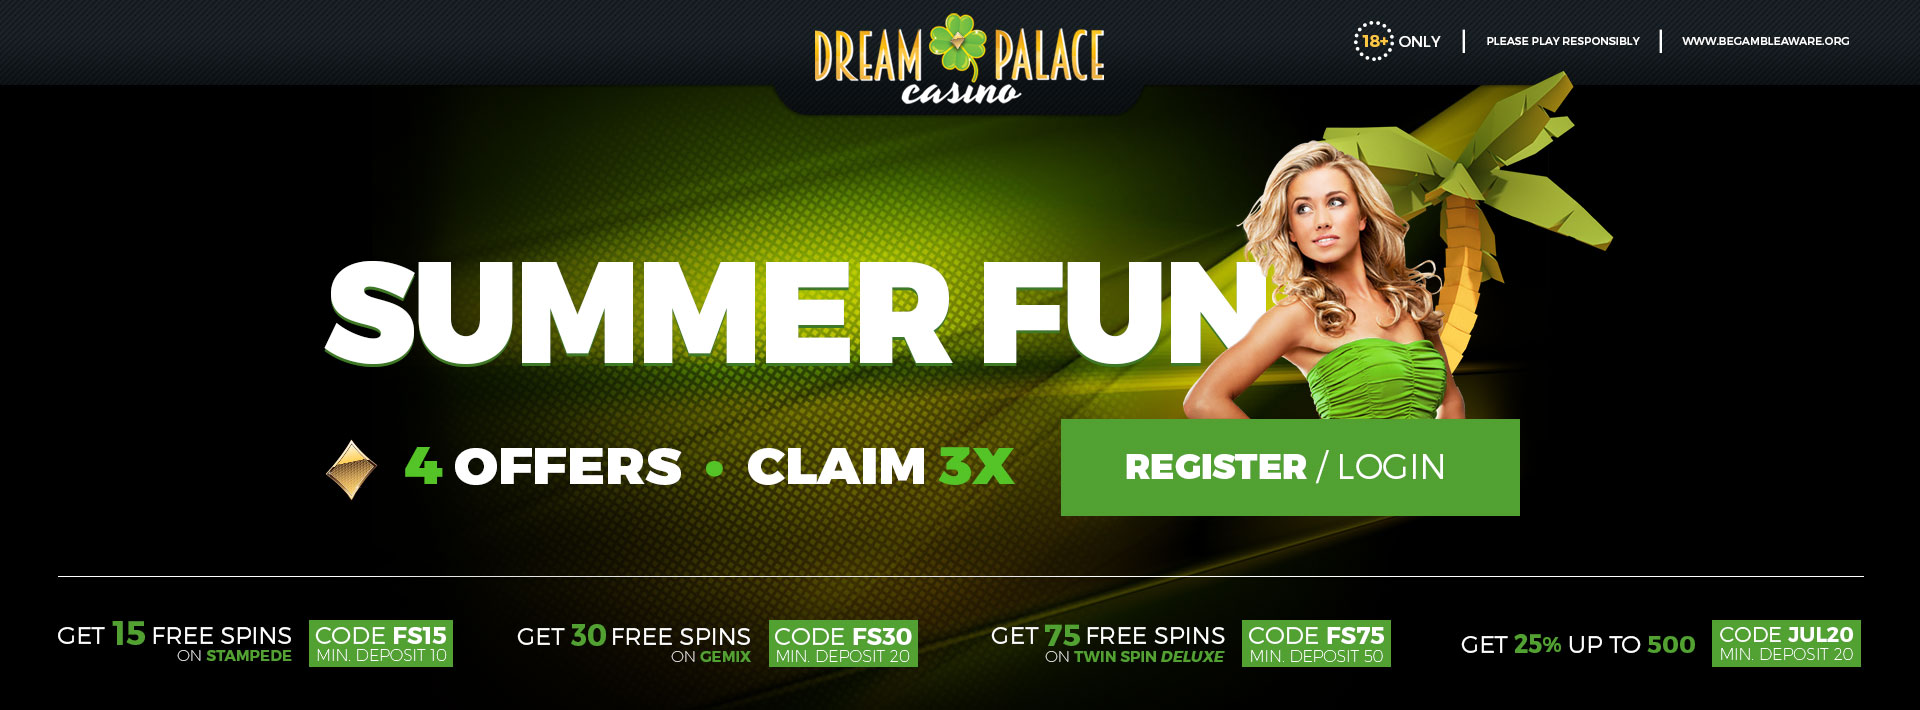 Summer Fun - Free Spins & Bonuses